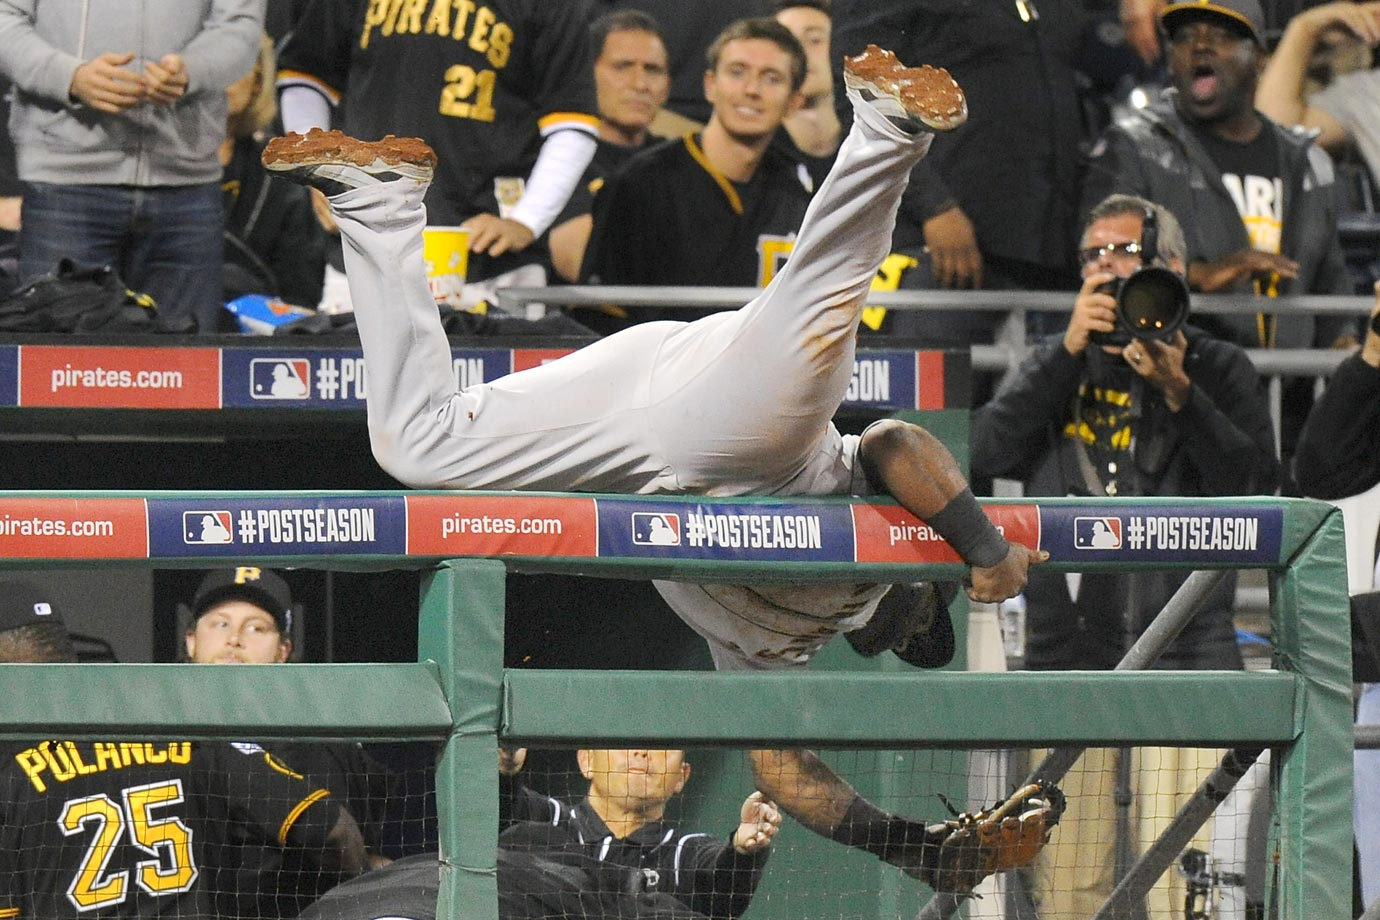 San Francisco Giants third baseman Pablo Sandoval flips over the dugout railing after making a catch against the Pirates.